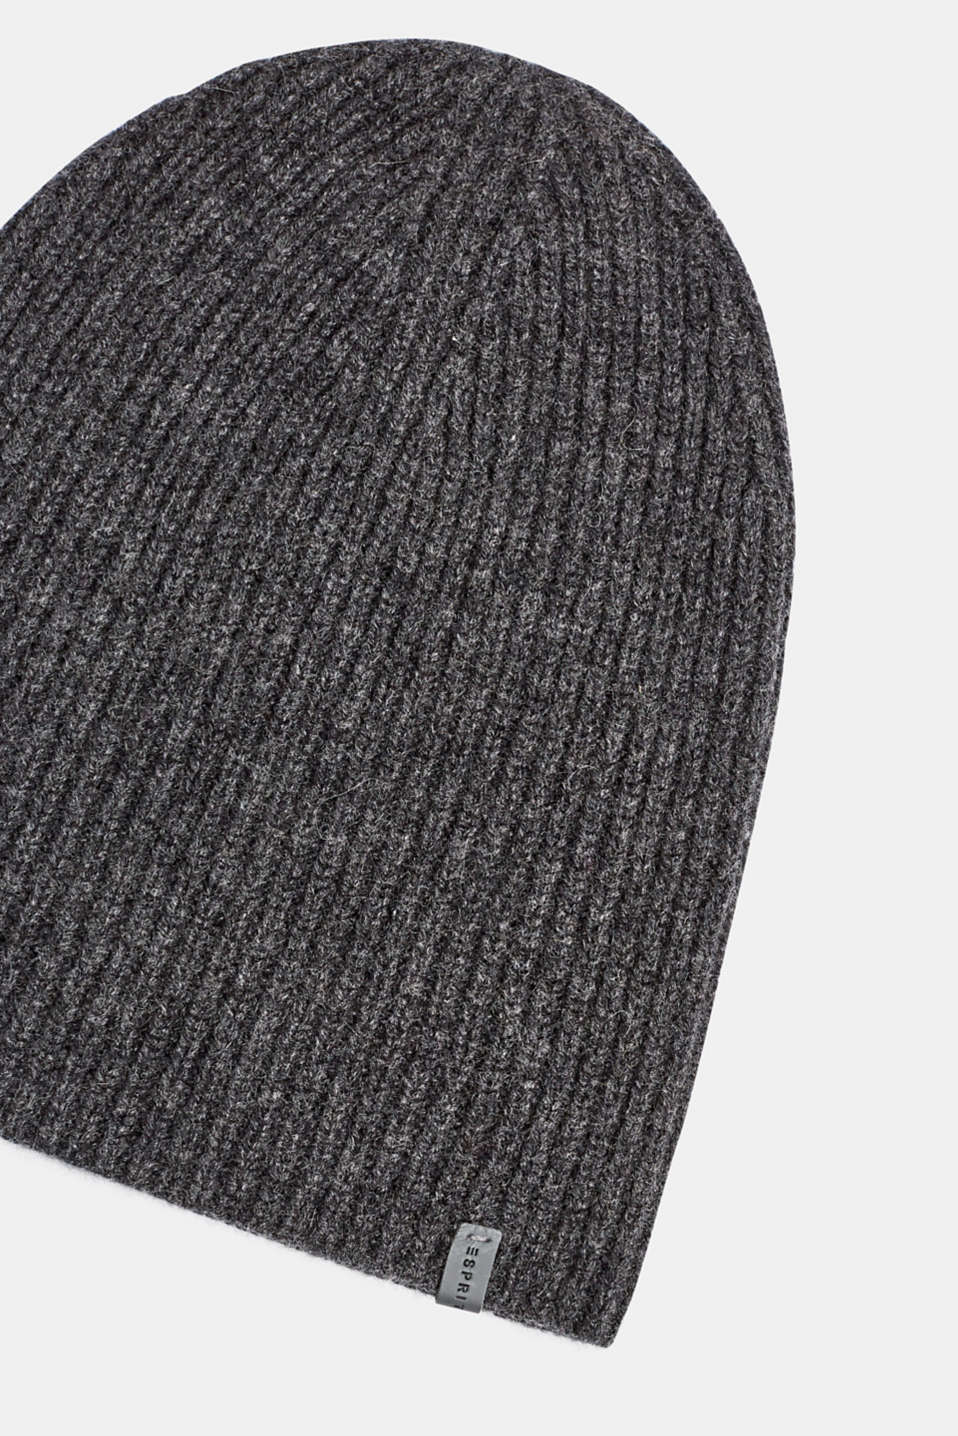 Hats/Caps, DARK GREY, detail image number 1